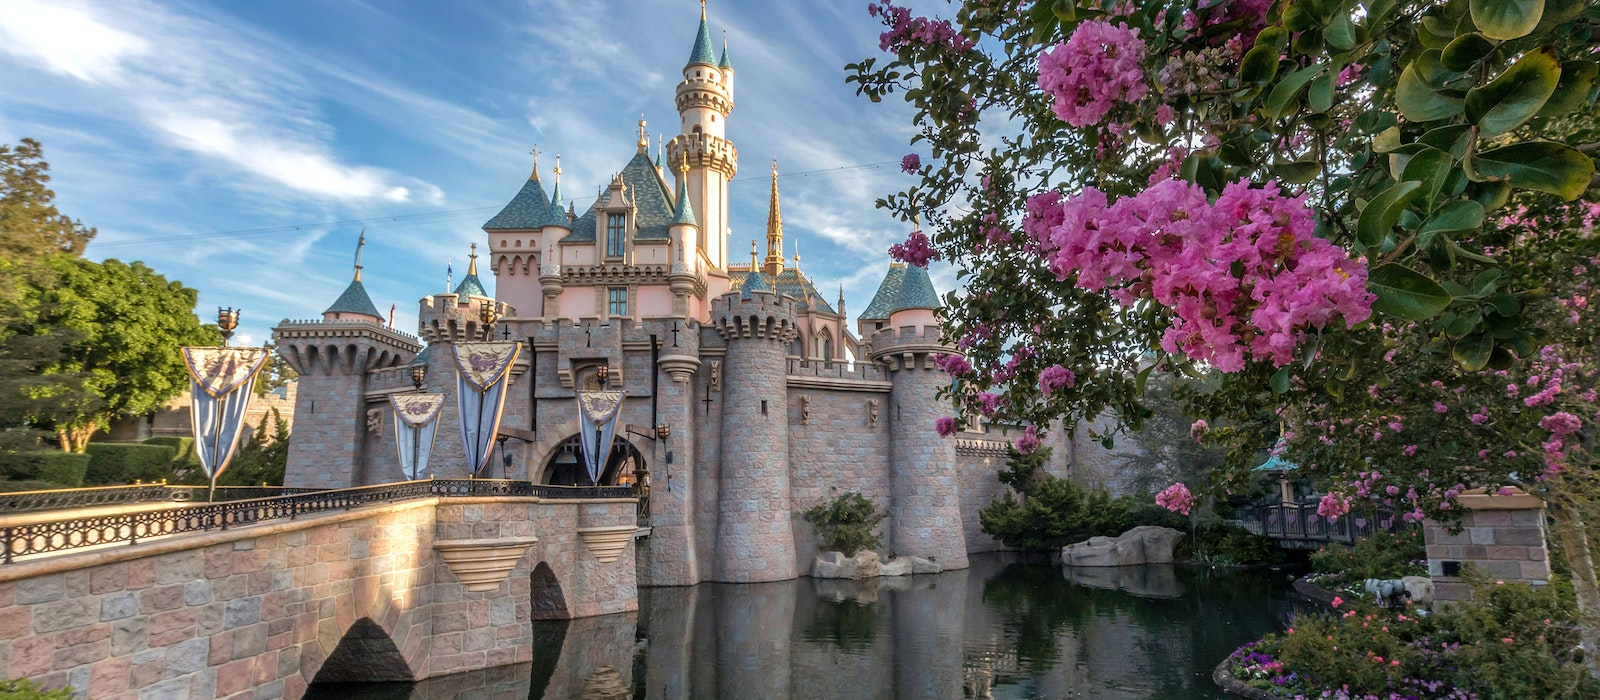 Serene moments outside Sleeping Beauty's Castle are rare but treasured occurrences.